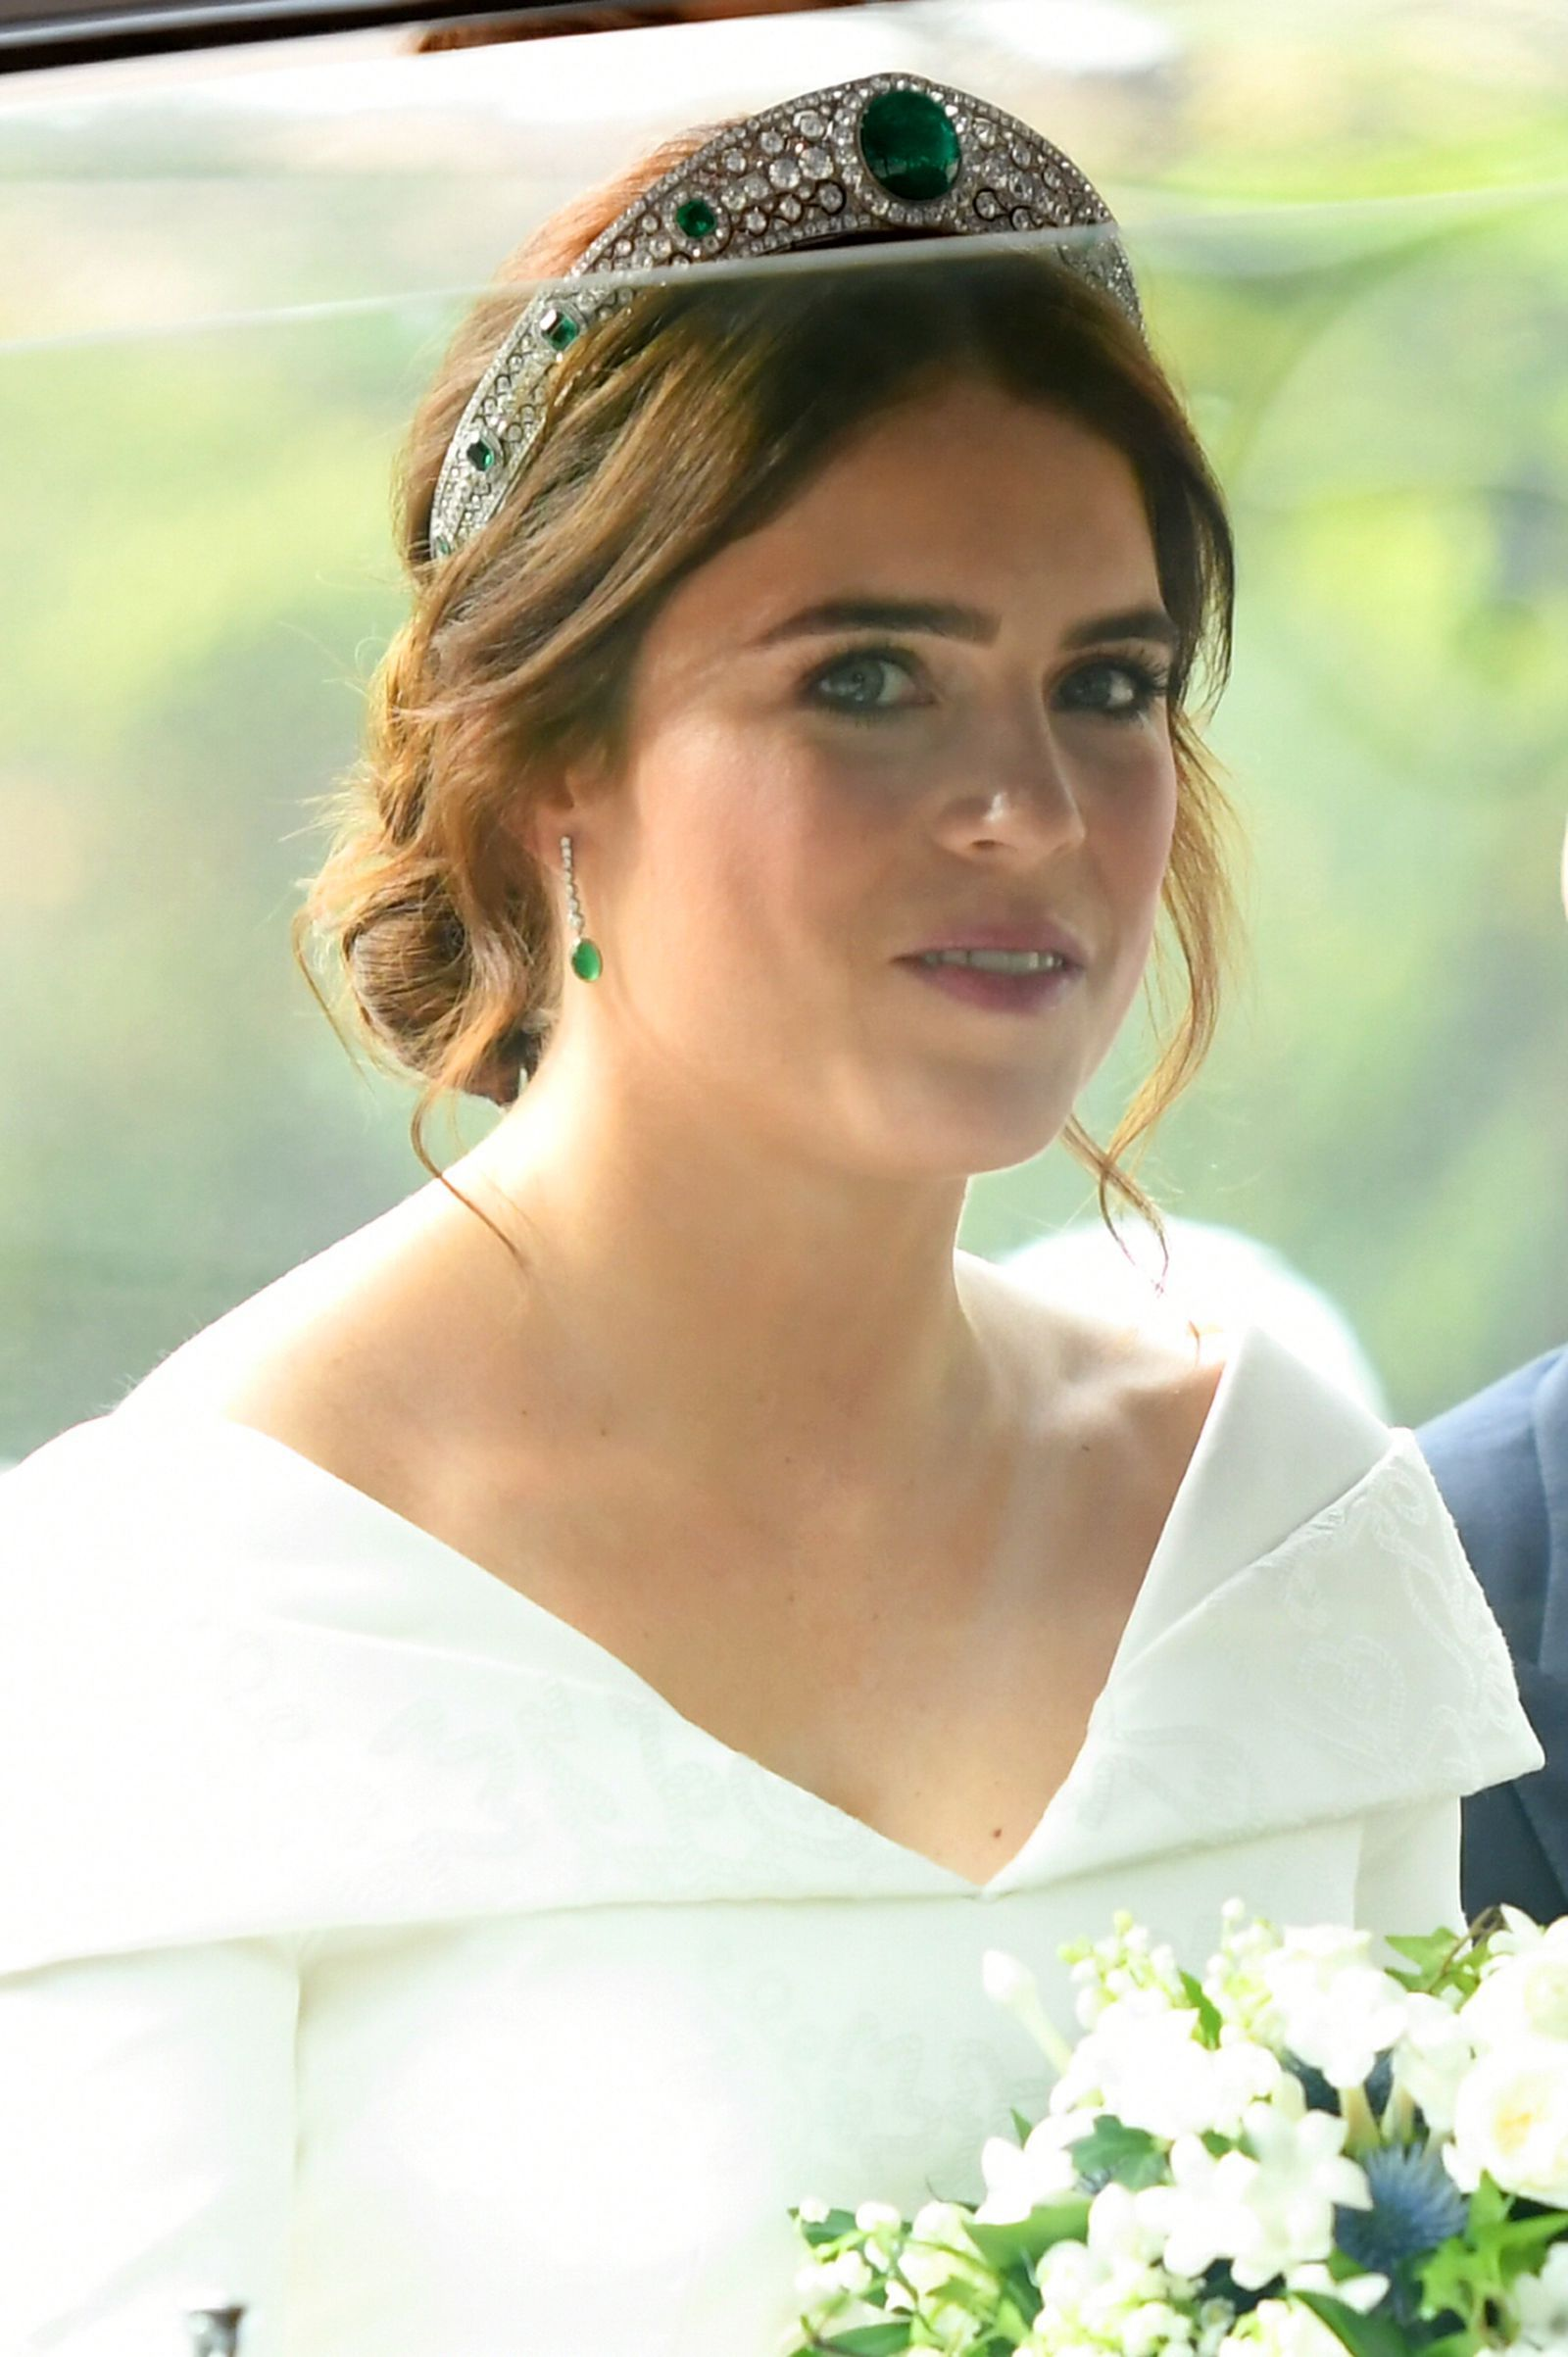 See All of the Photos of Princess Eugenie's Wedding Tiara